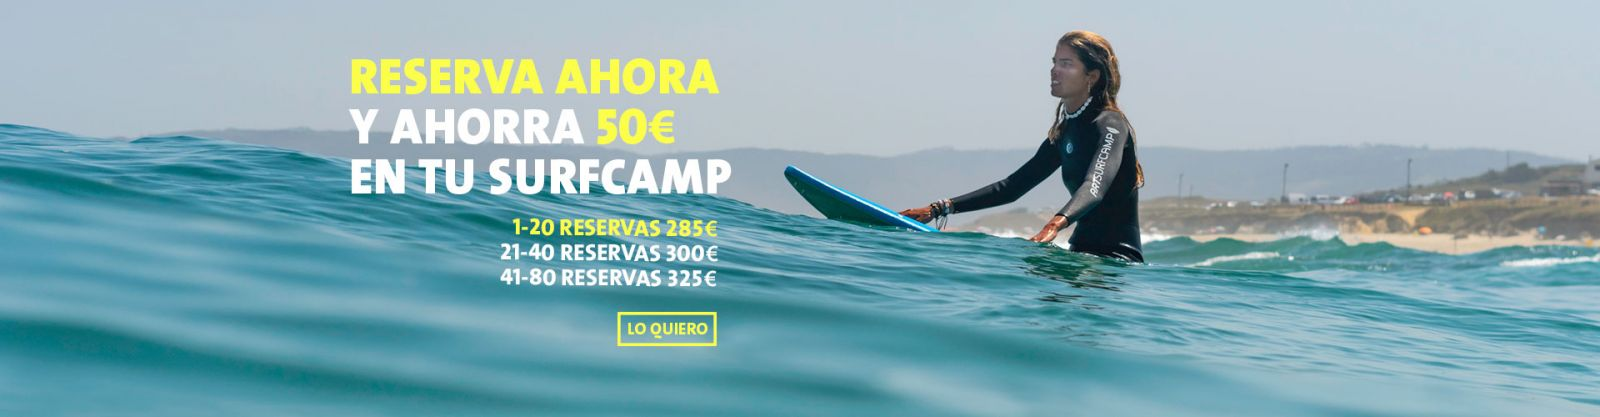 Oferta Surf Camp Reserva Anticipada